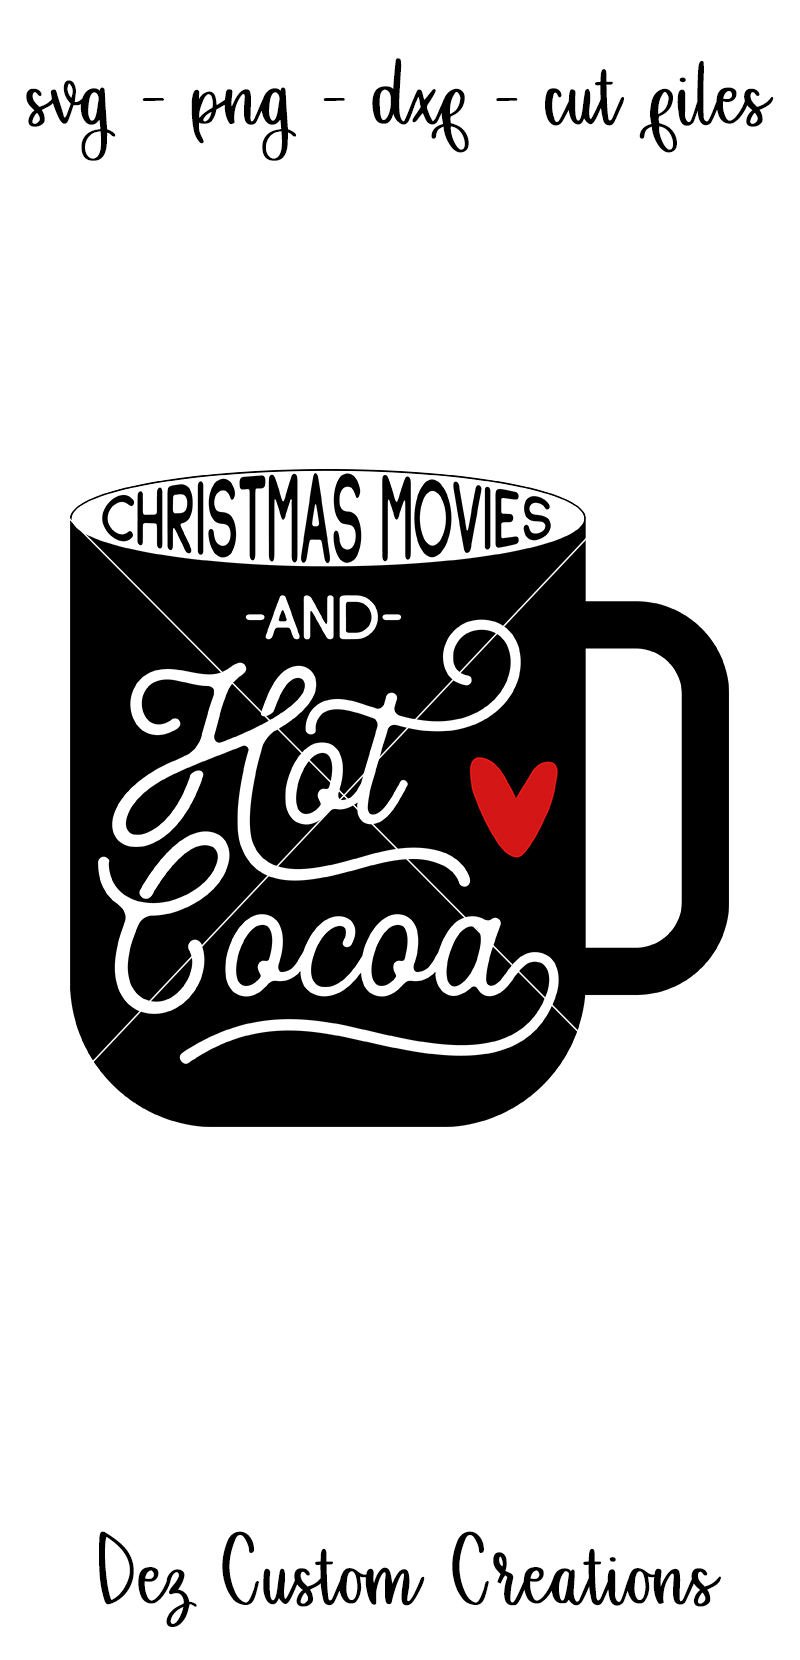 Christmas Movies & Hot Cocoa - Wine - SVG DXF PNG files example image 4